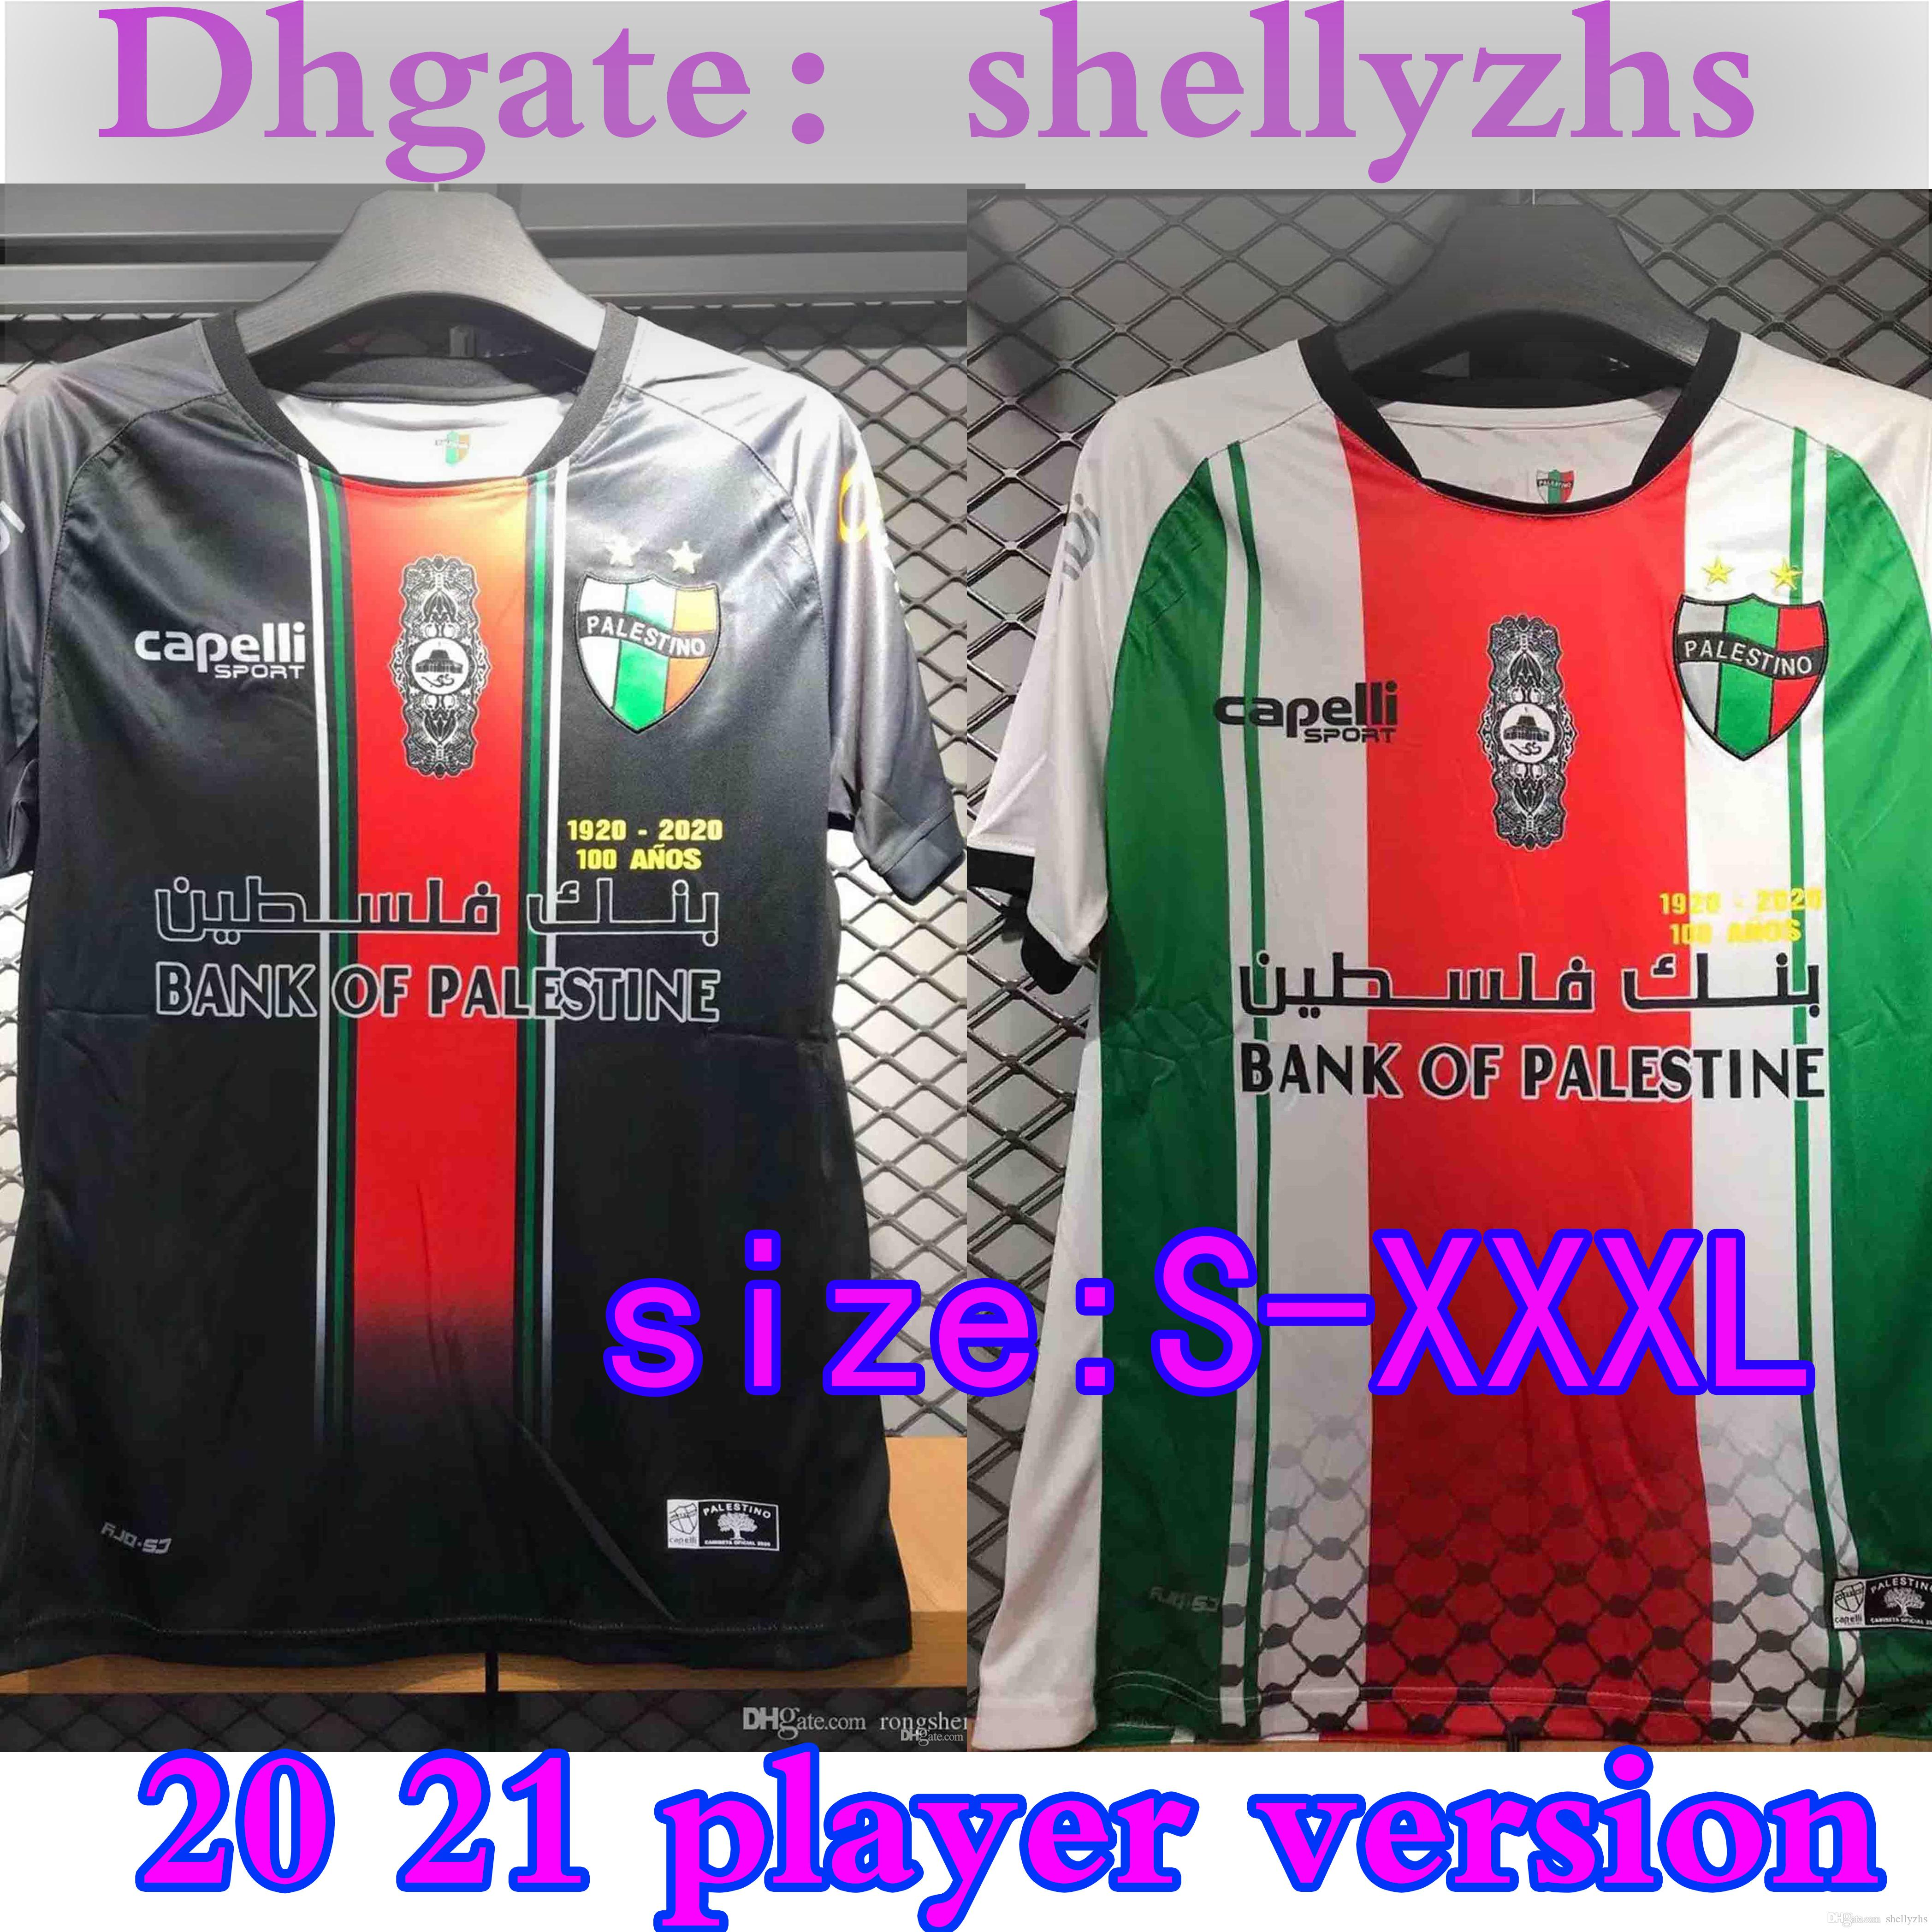 Taille: S-3XL 2020 2021 CD Palestino Football Maillots Chili Palestino CUTIERREZ CAMPOS Rosende maison ORRES loin 3 20 21 hommes chemise de football